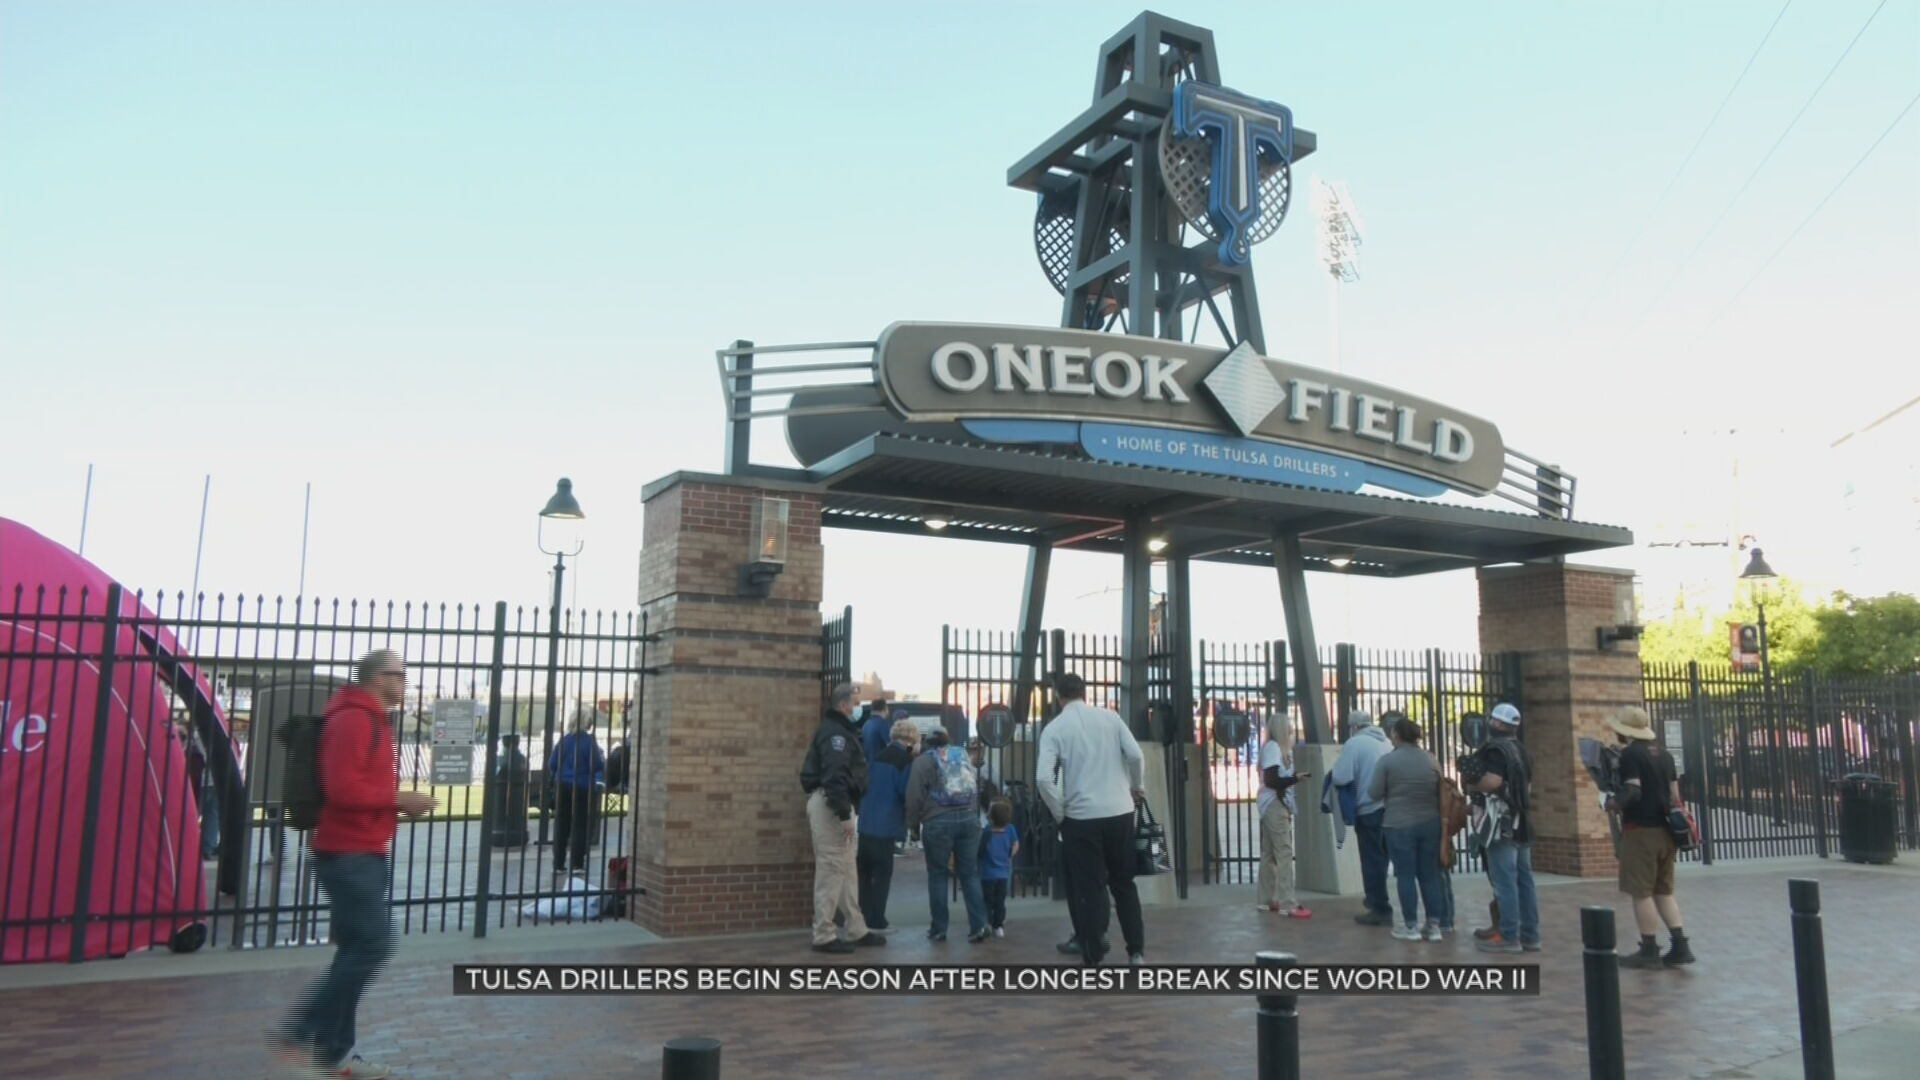 Tulsa Drillers Play Ball For First Time In Nearly 600 Days